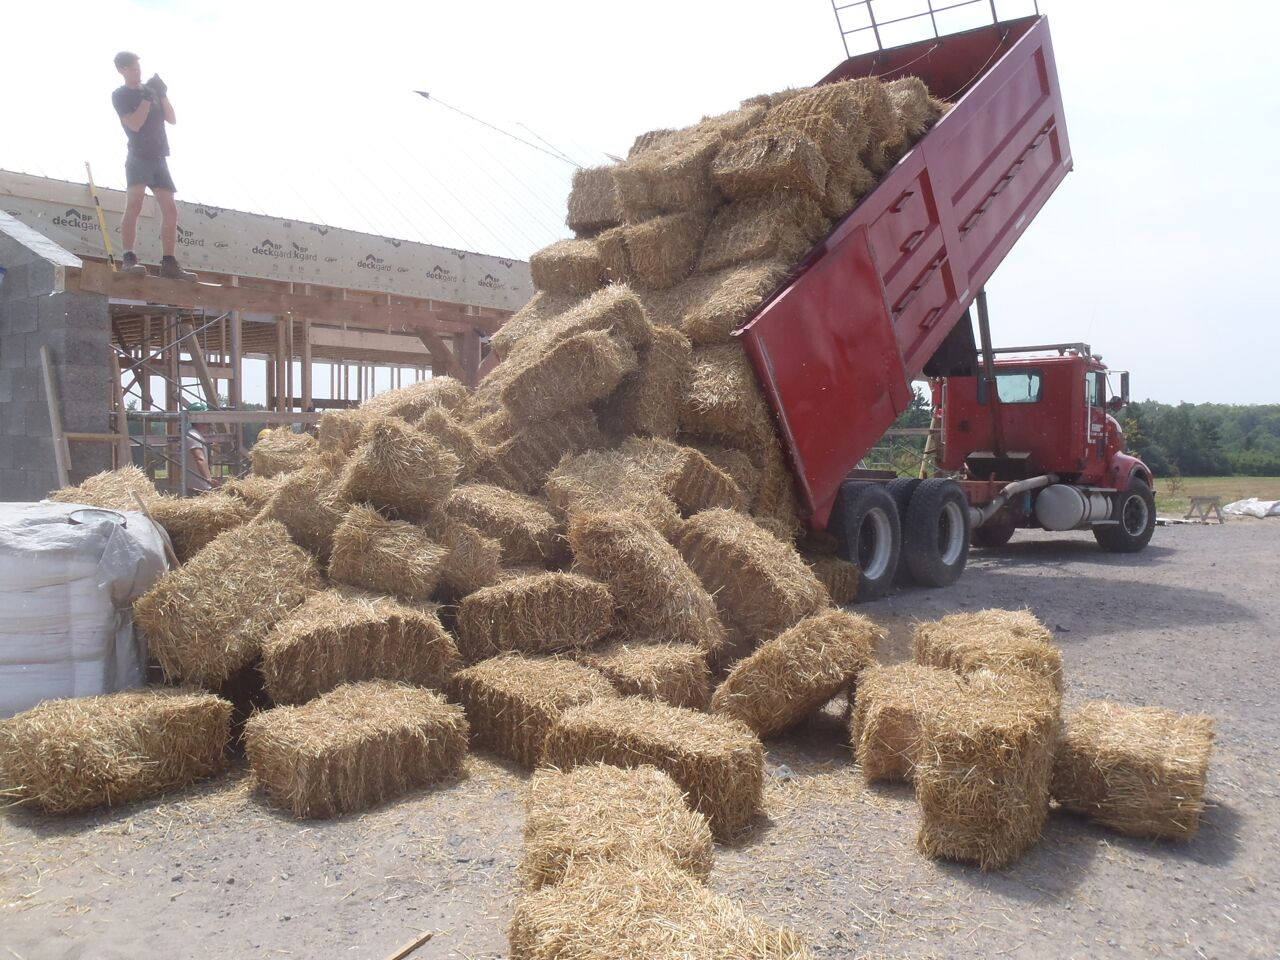 straw bales being unloaded from a truck